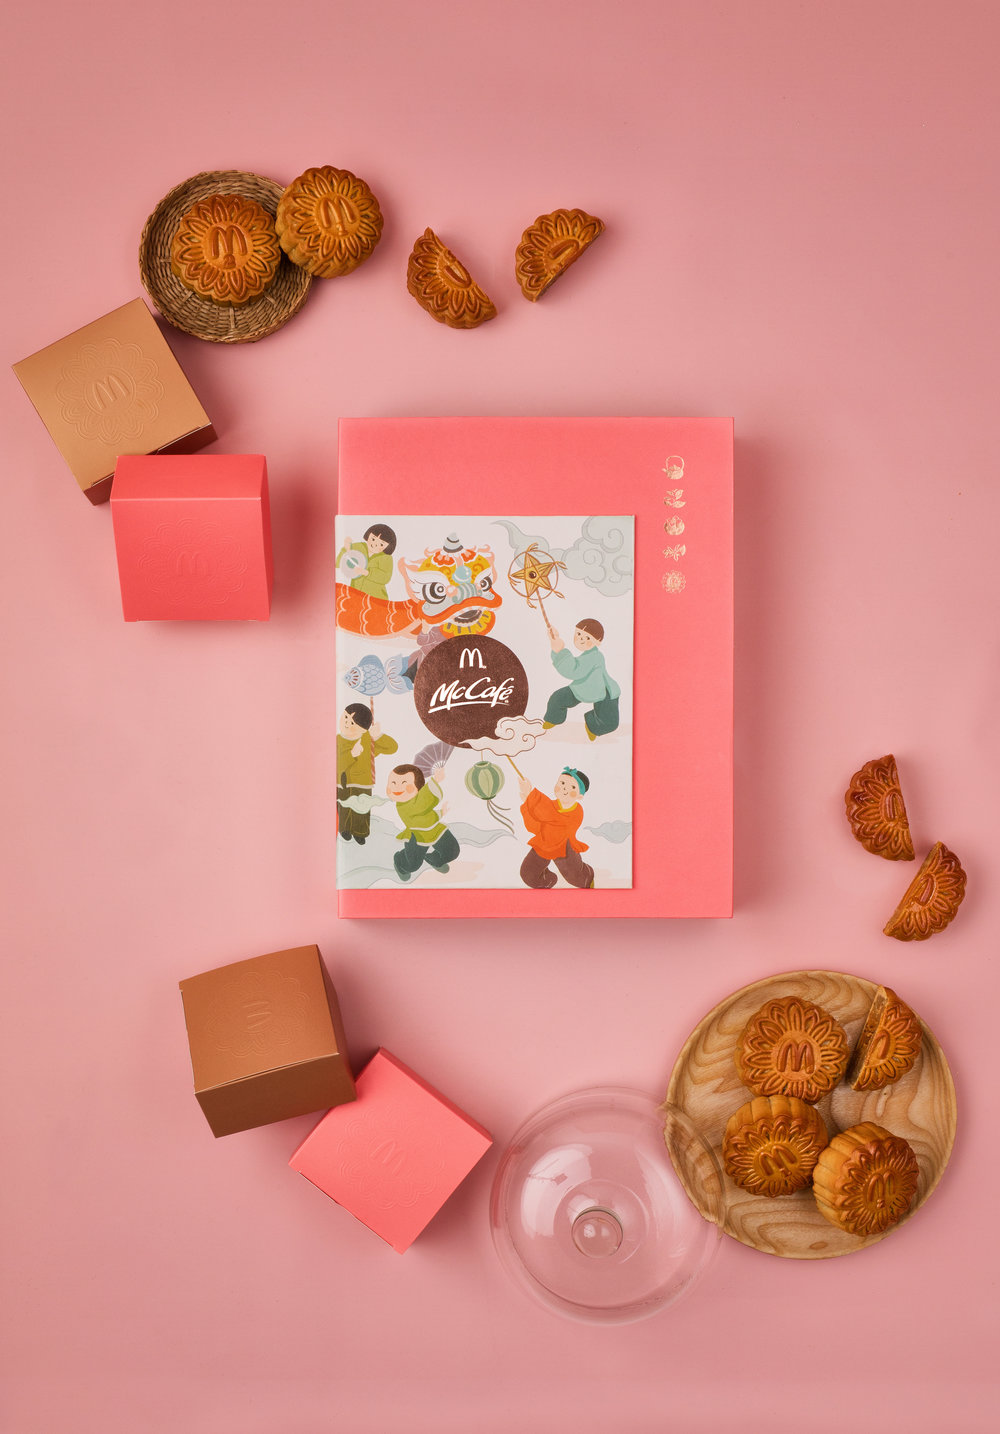 McDonald's Vietnam Mooncake Design 2018 photography by thatsluminous